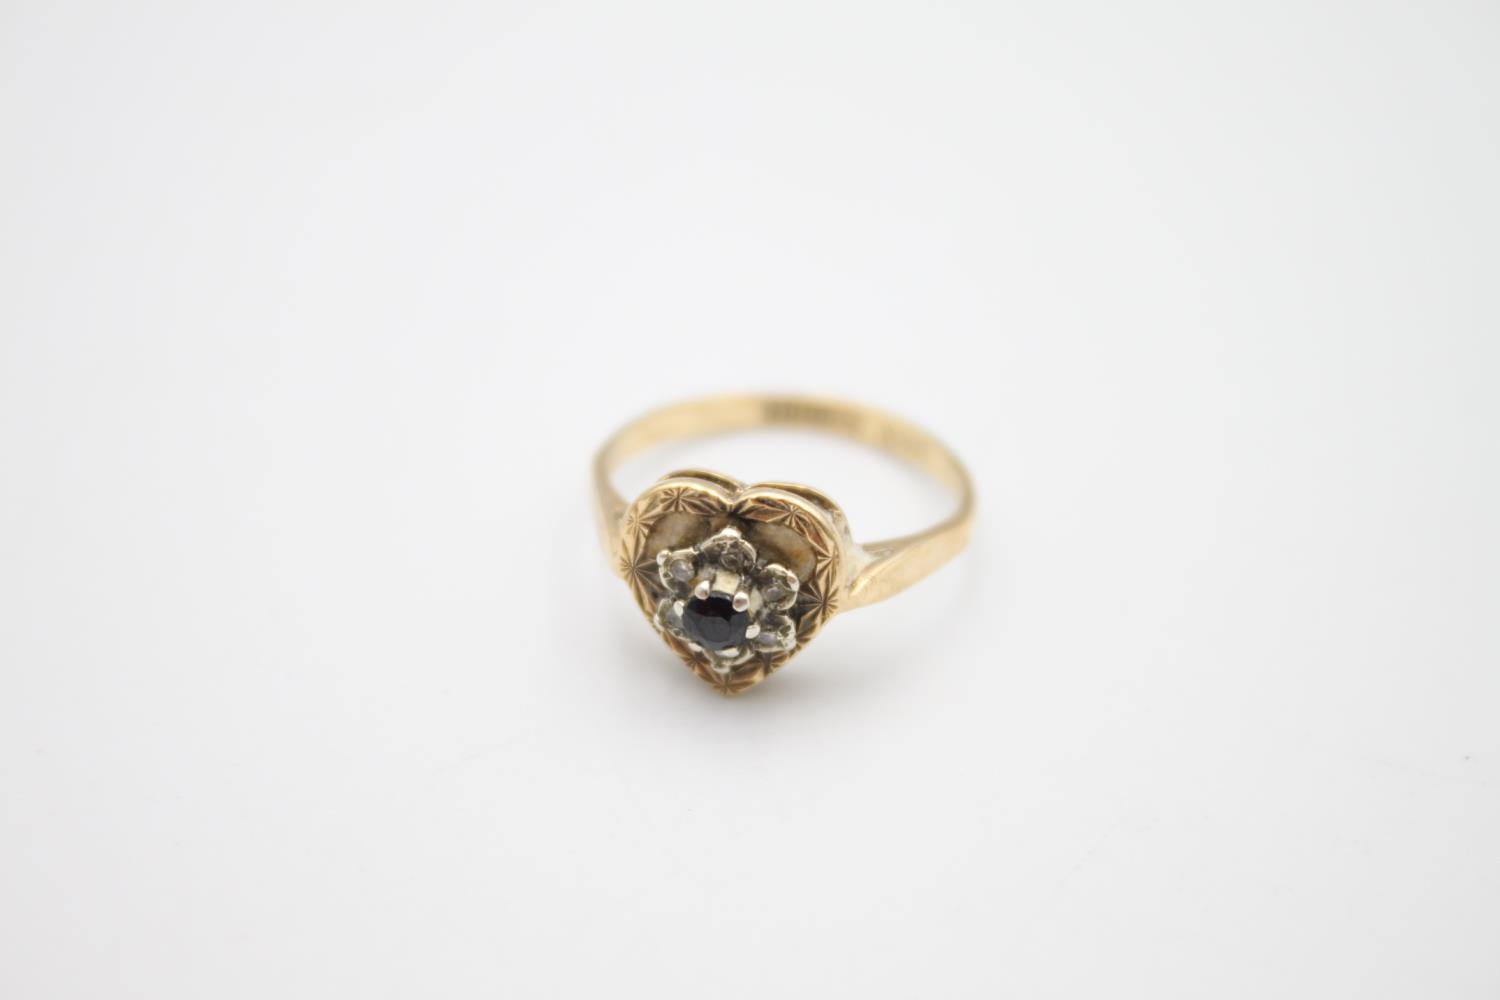 9ct gold diamond sapphire cluster ring 2.7g Size L